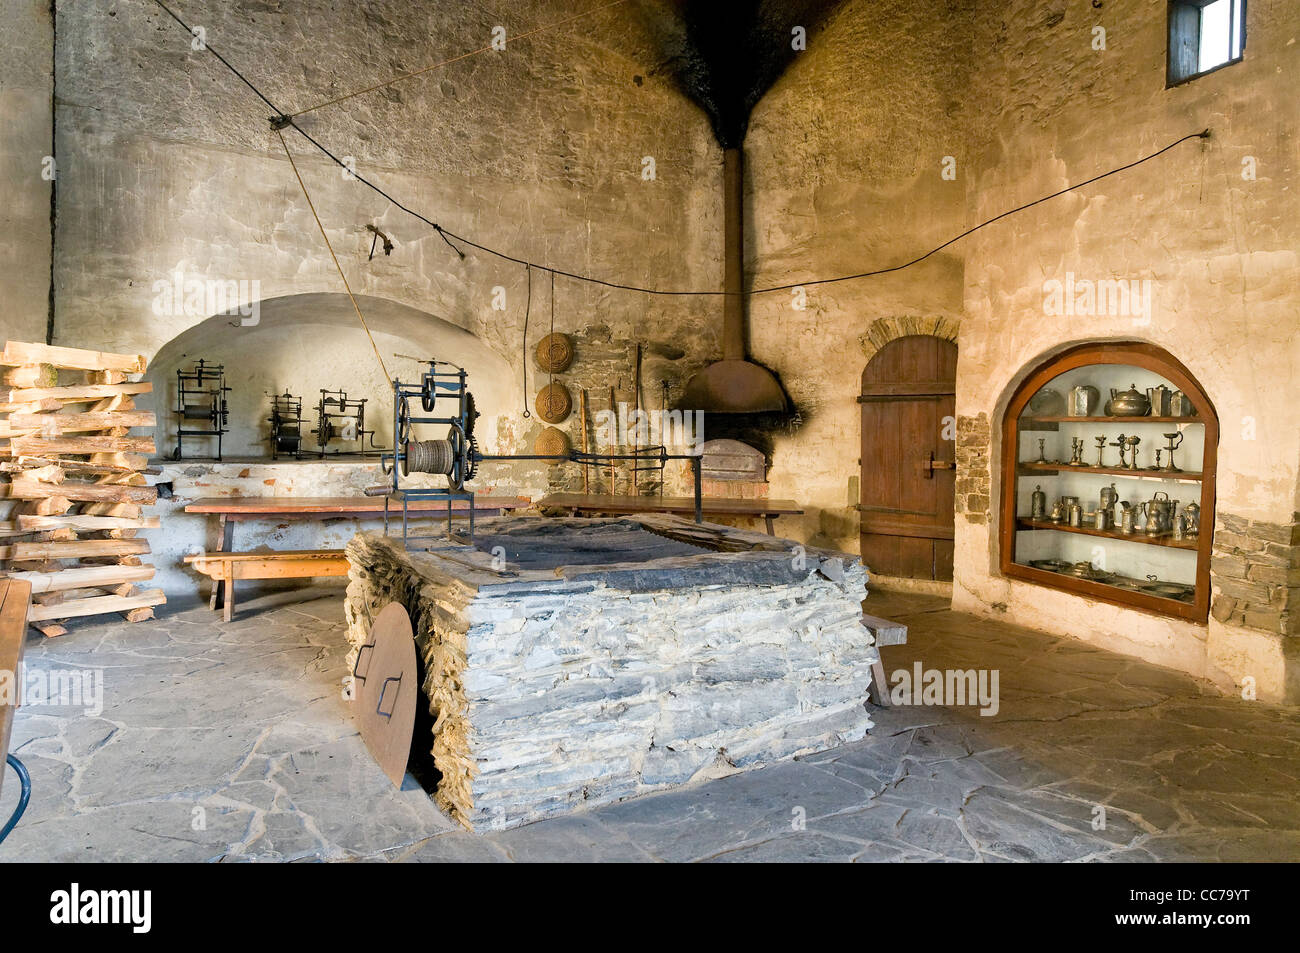 Medieval Castle Kitchen Museum Burgk Thuringia Germany Europe